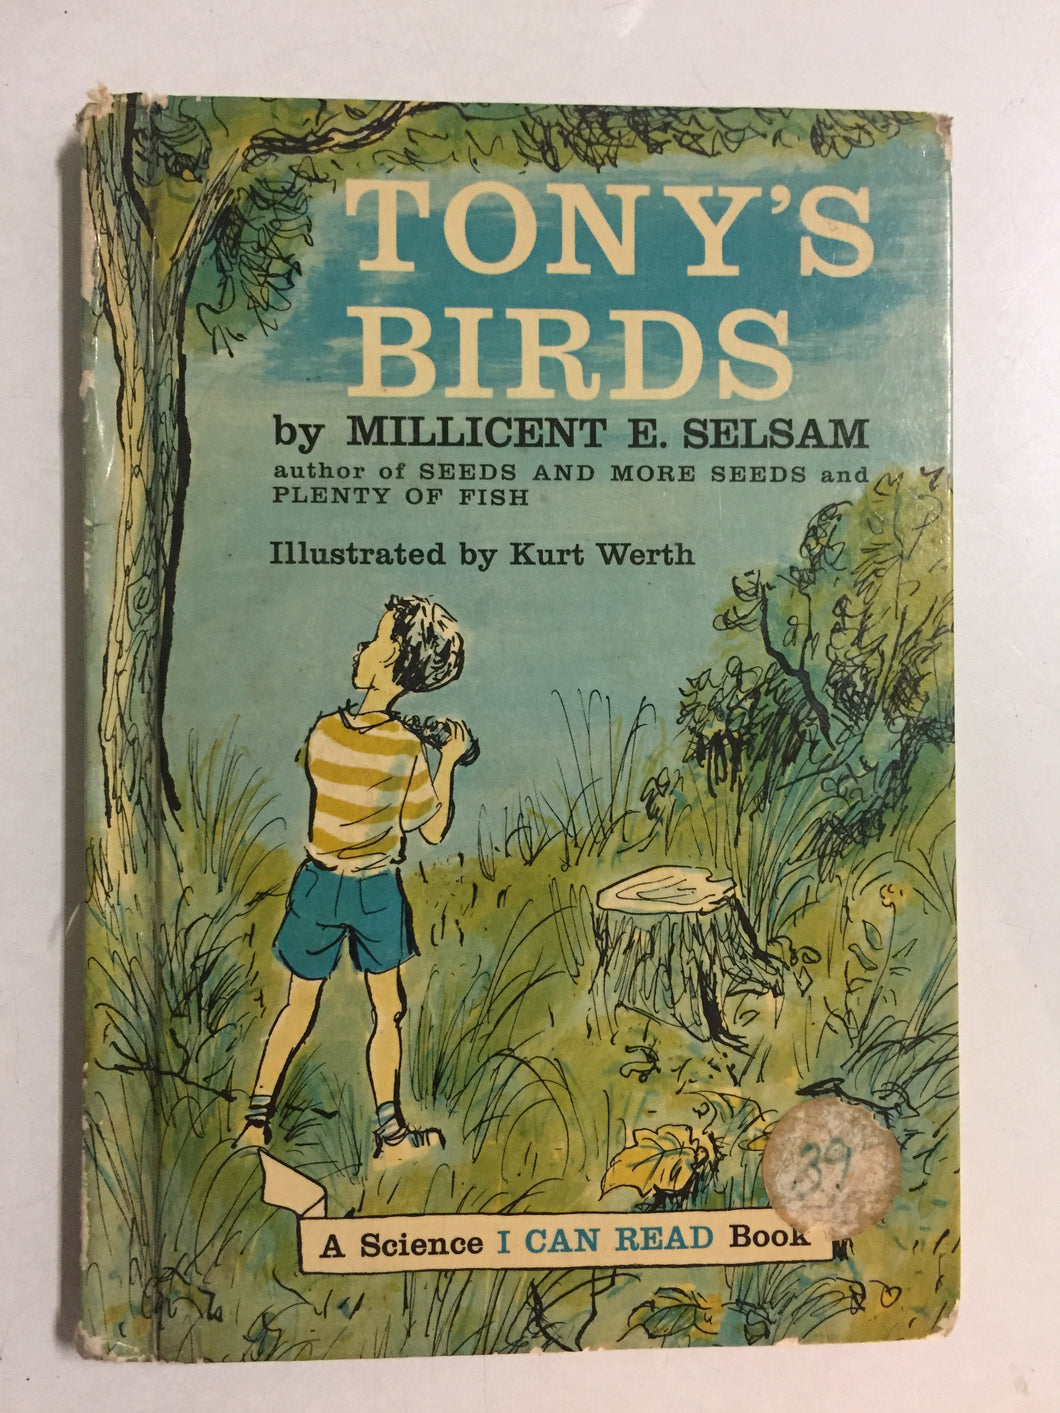 Tony's Birds - Slickcatbooks